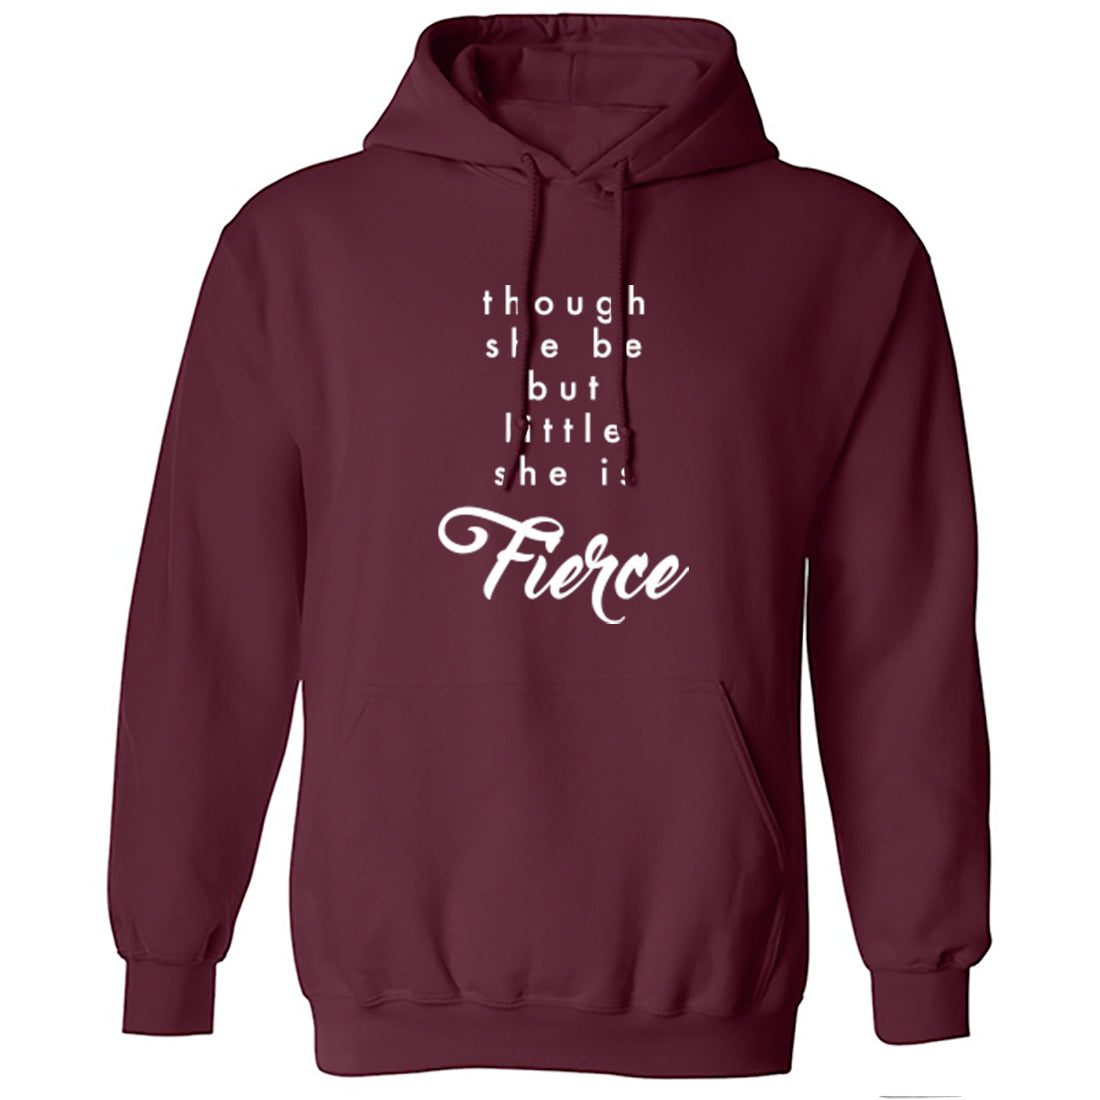 Though She Be But Little She Is Fierce Unisex Hoodie K2073 - Illustrated Identity Ltd.